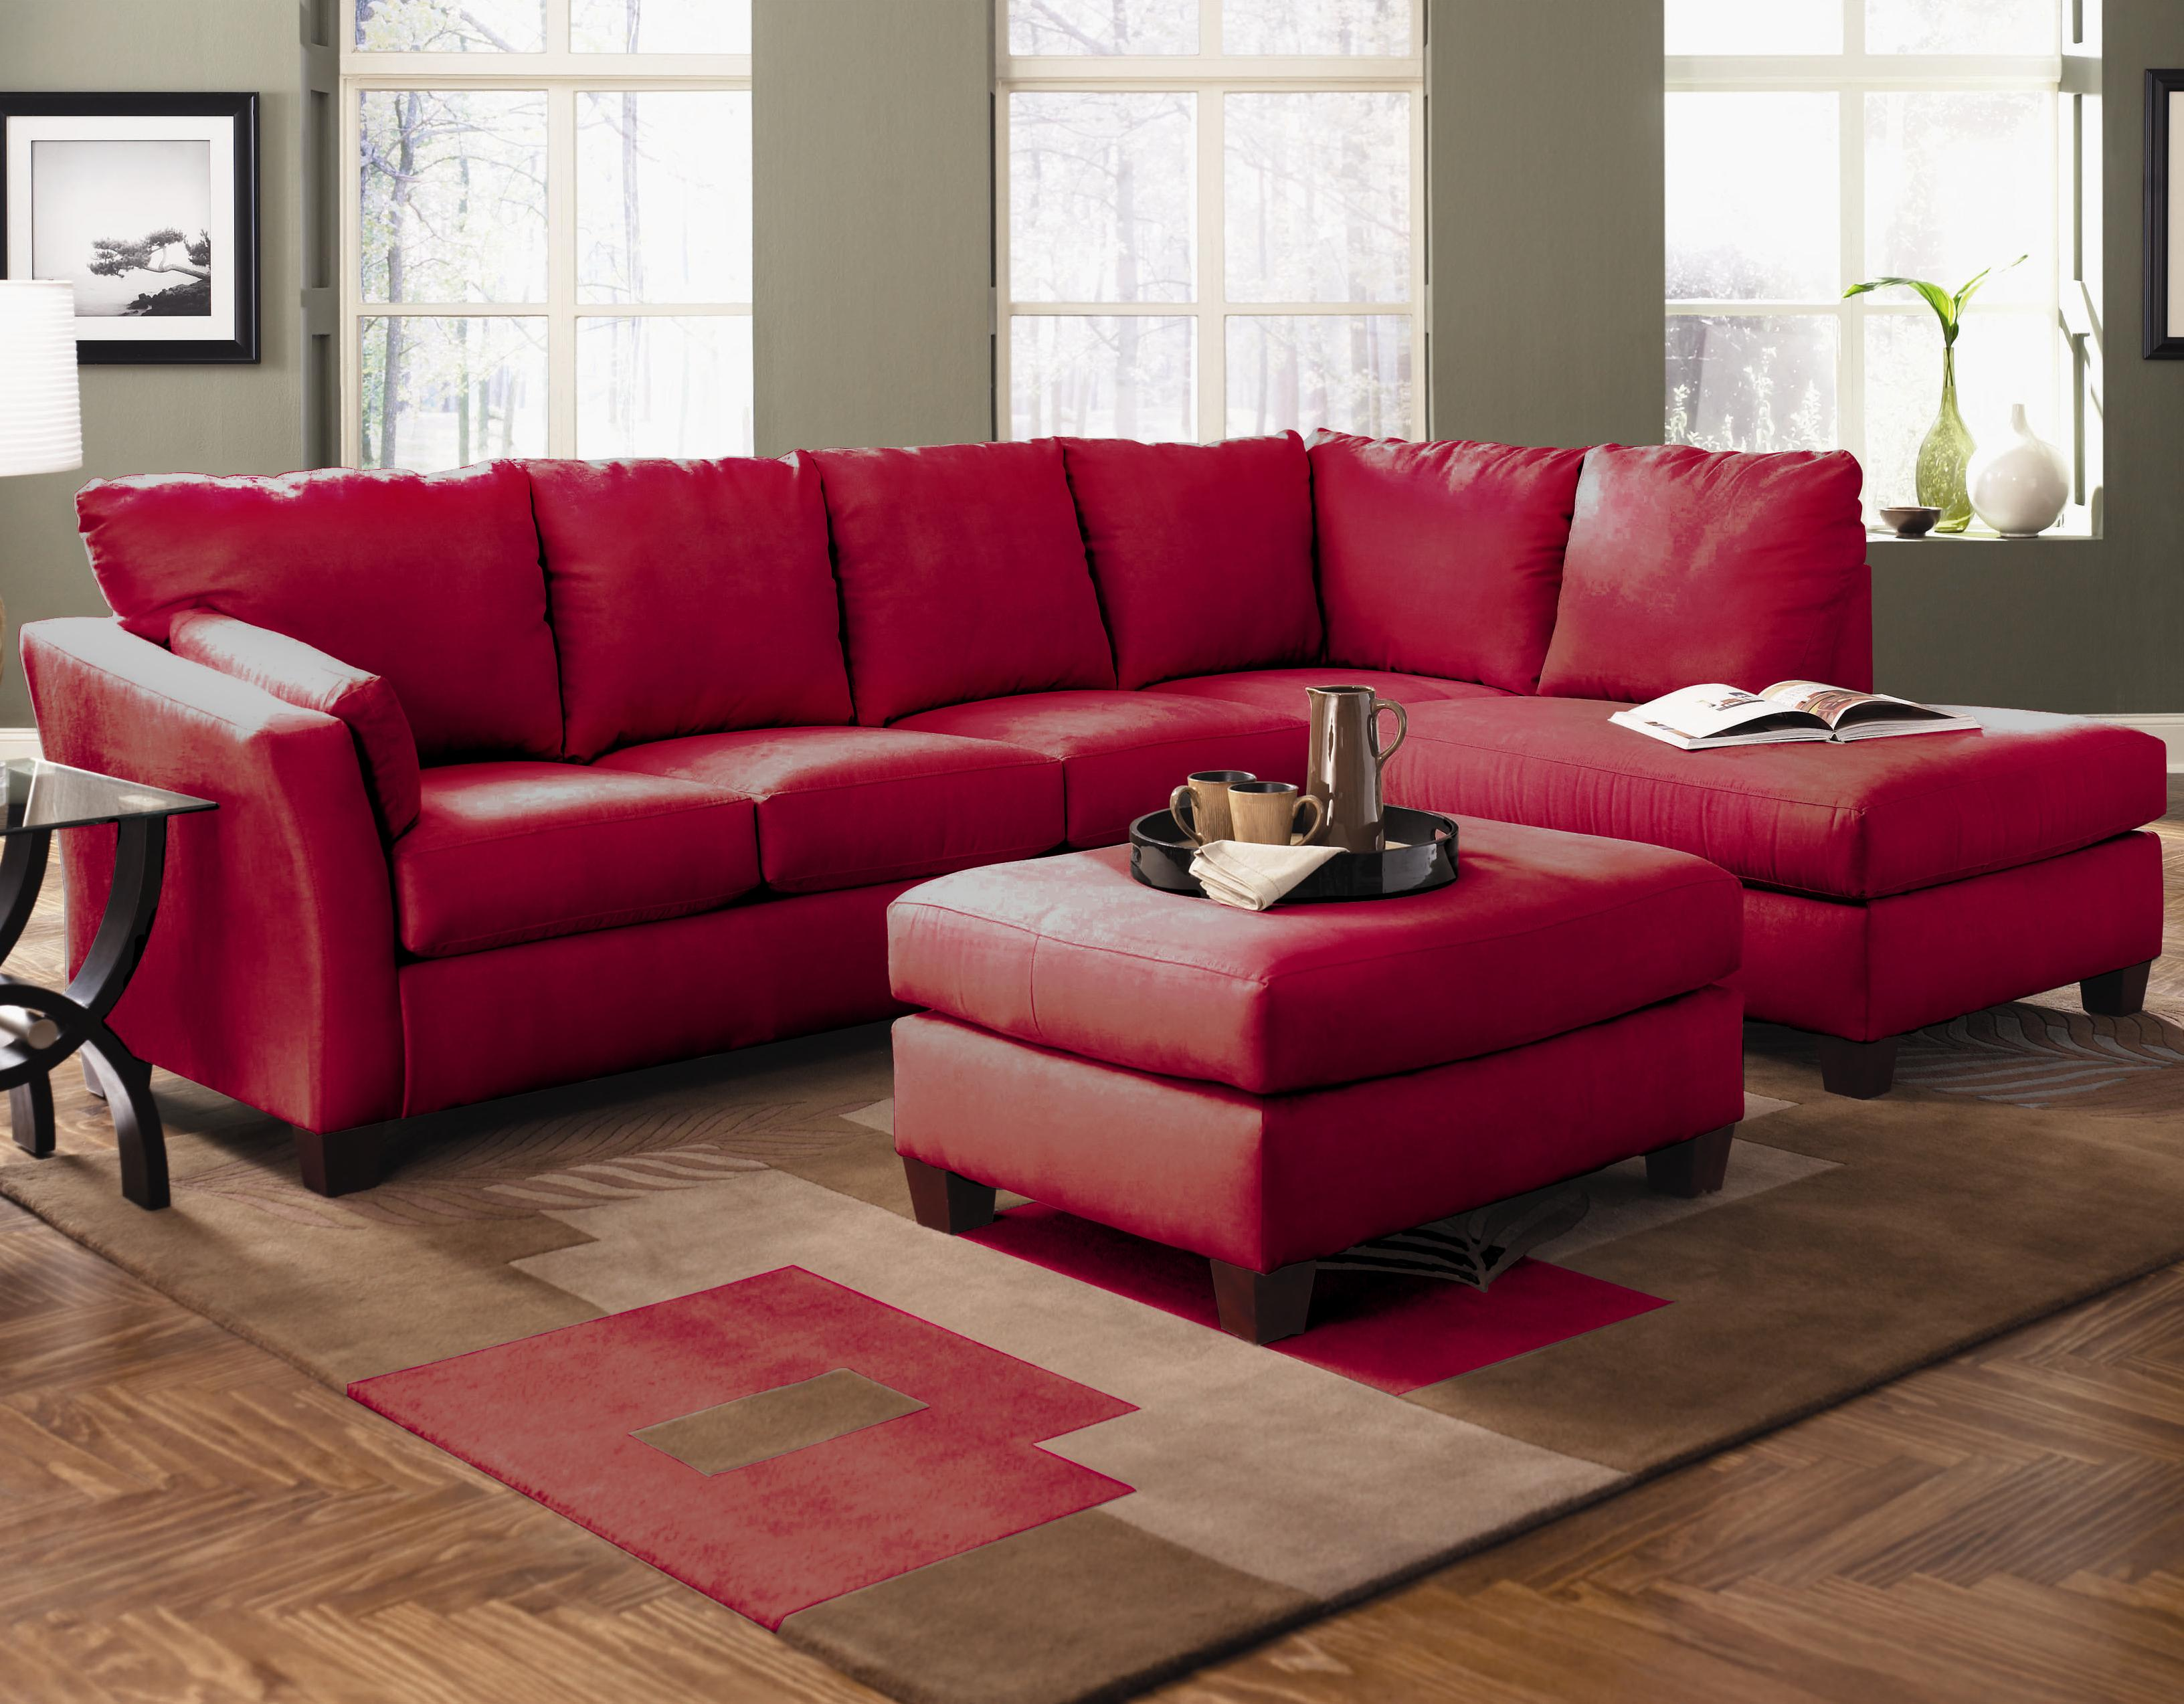 Klaussner Drew Two Piece Sectional Sofa With Chaise - Value City Furniture - Sectional Sofas : two piece sectional sofa with chaise - Sectionals, Sofas & Couches